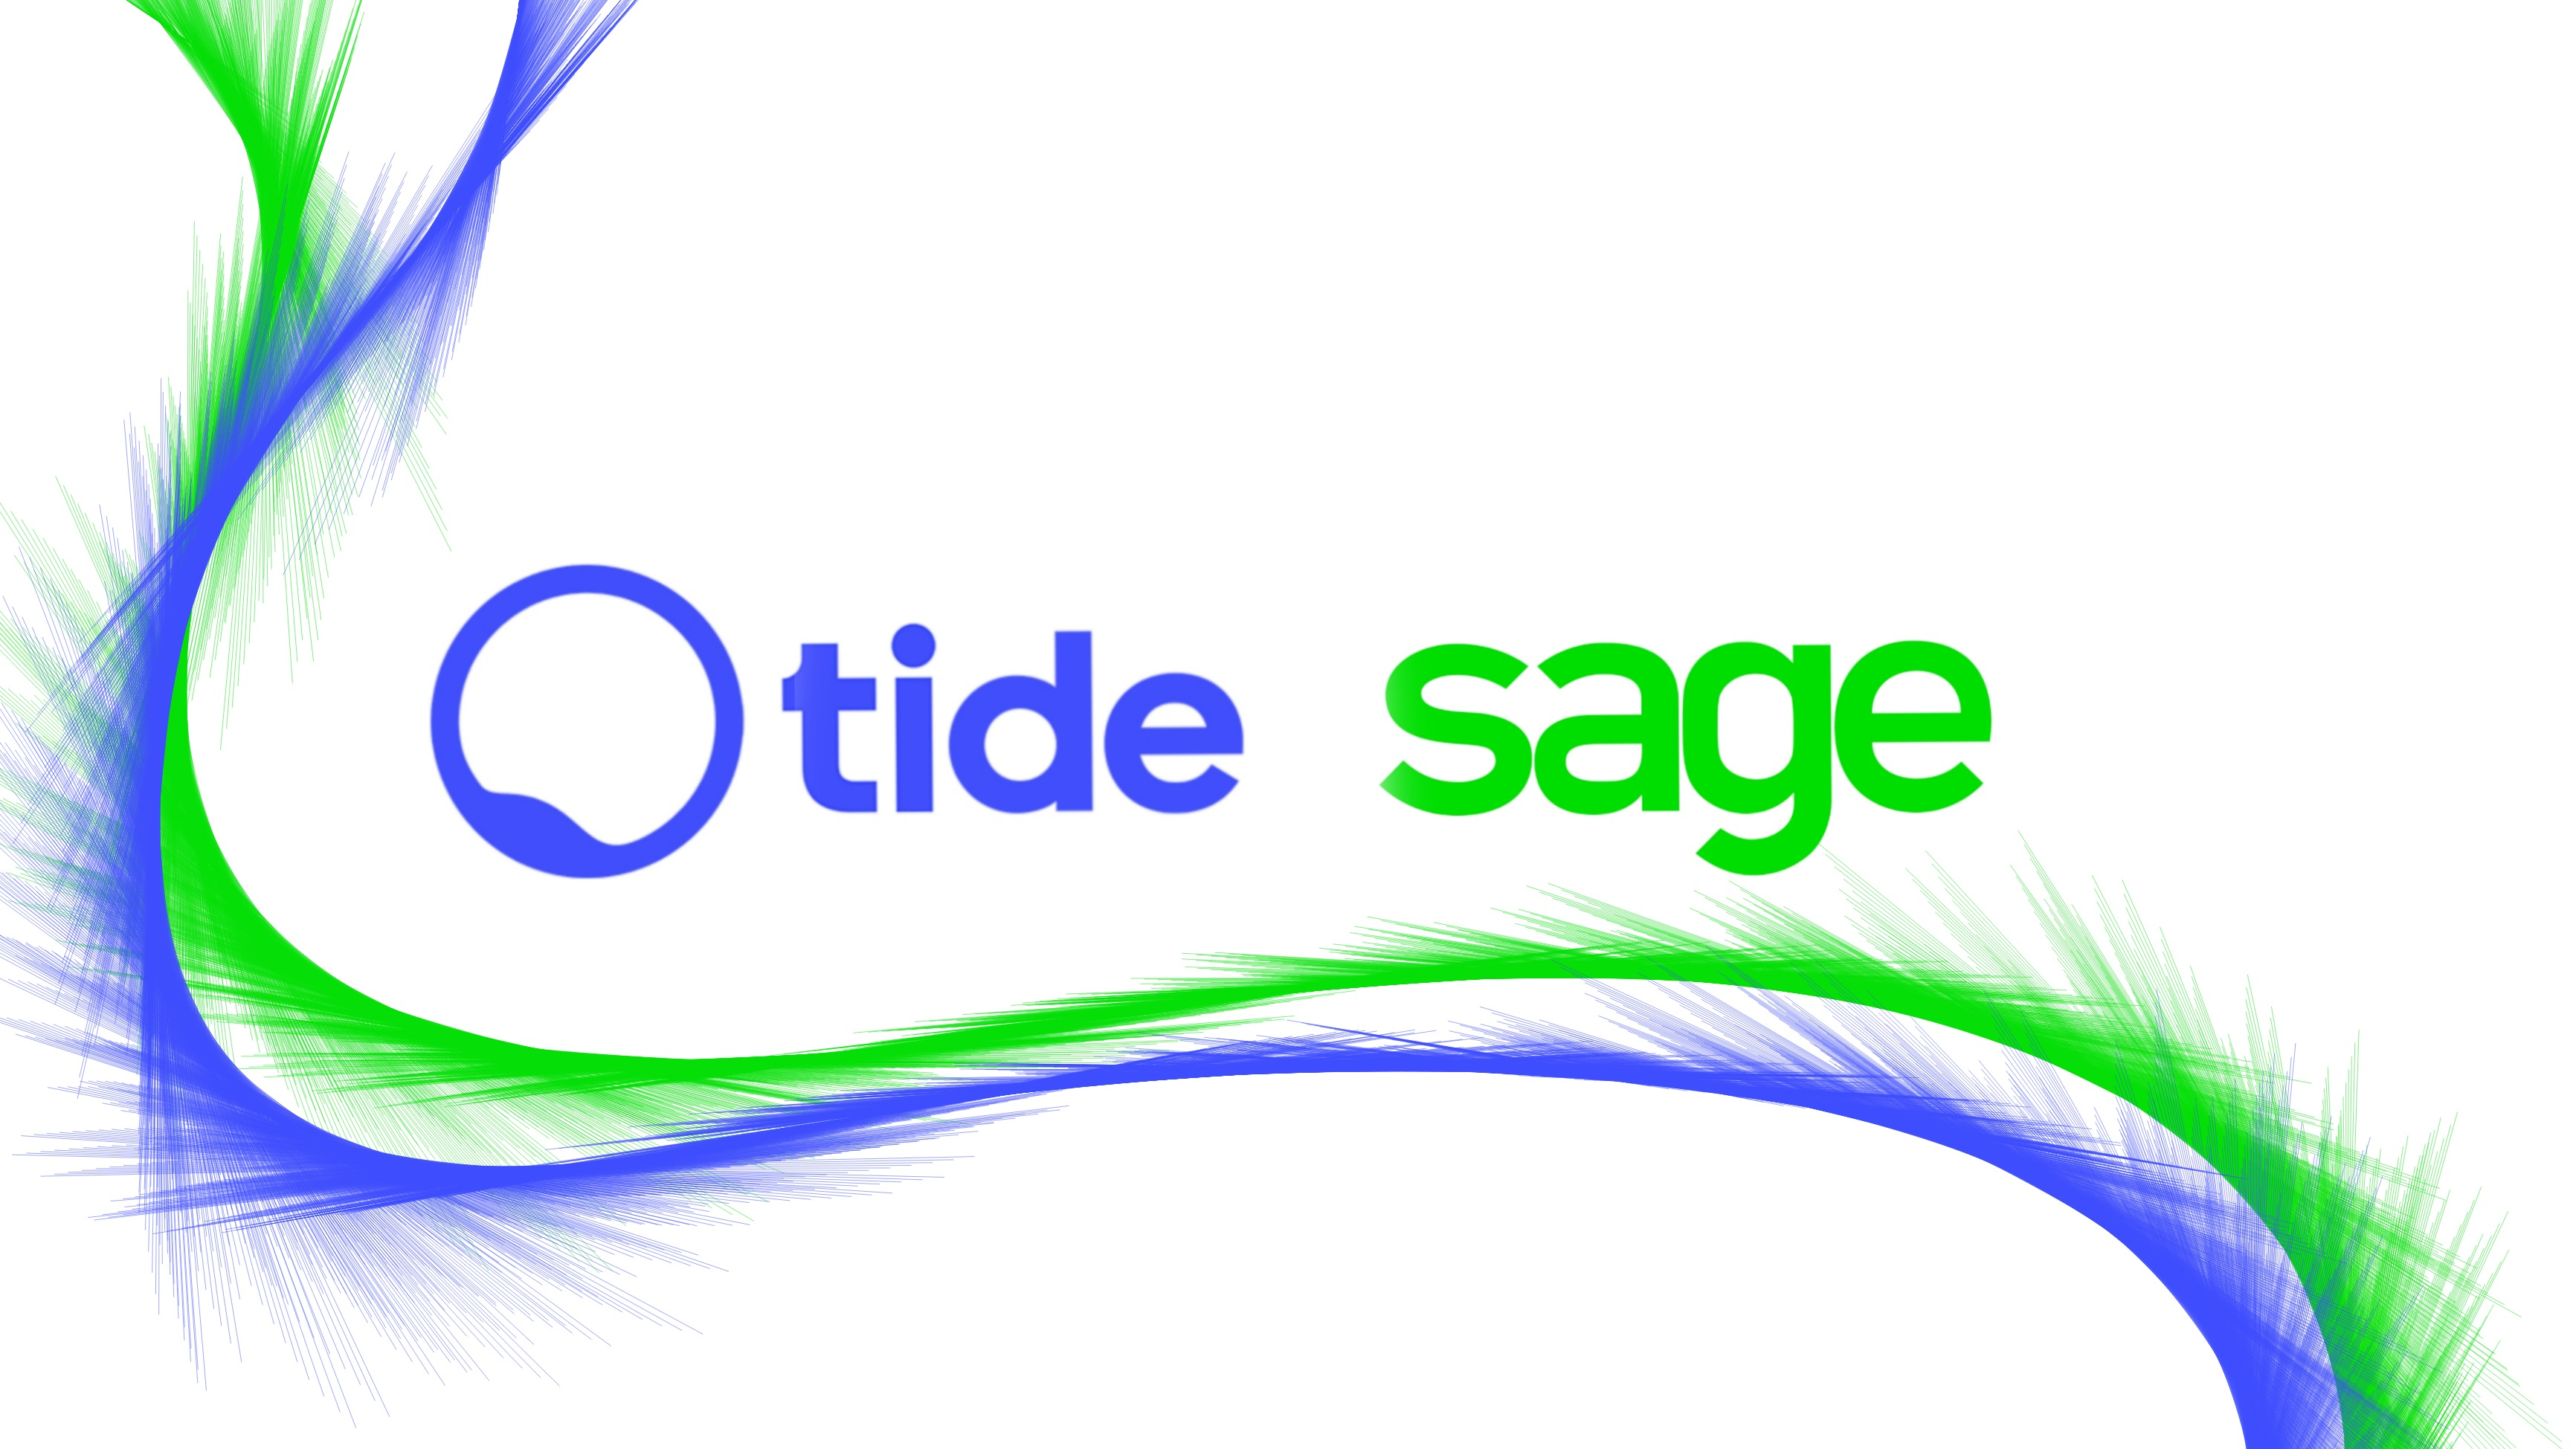 Tide Teams up with Sage to Streamline Small Business Tax and Accounting